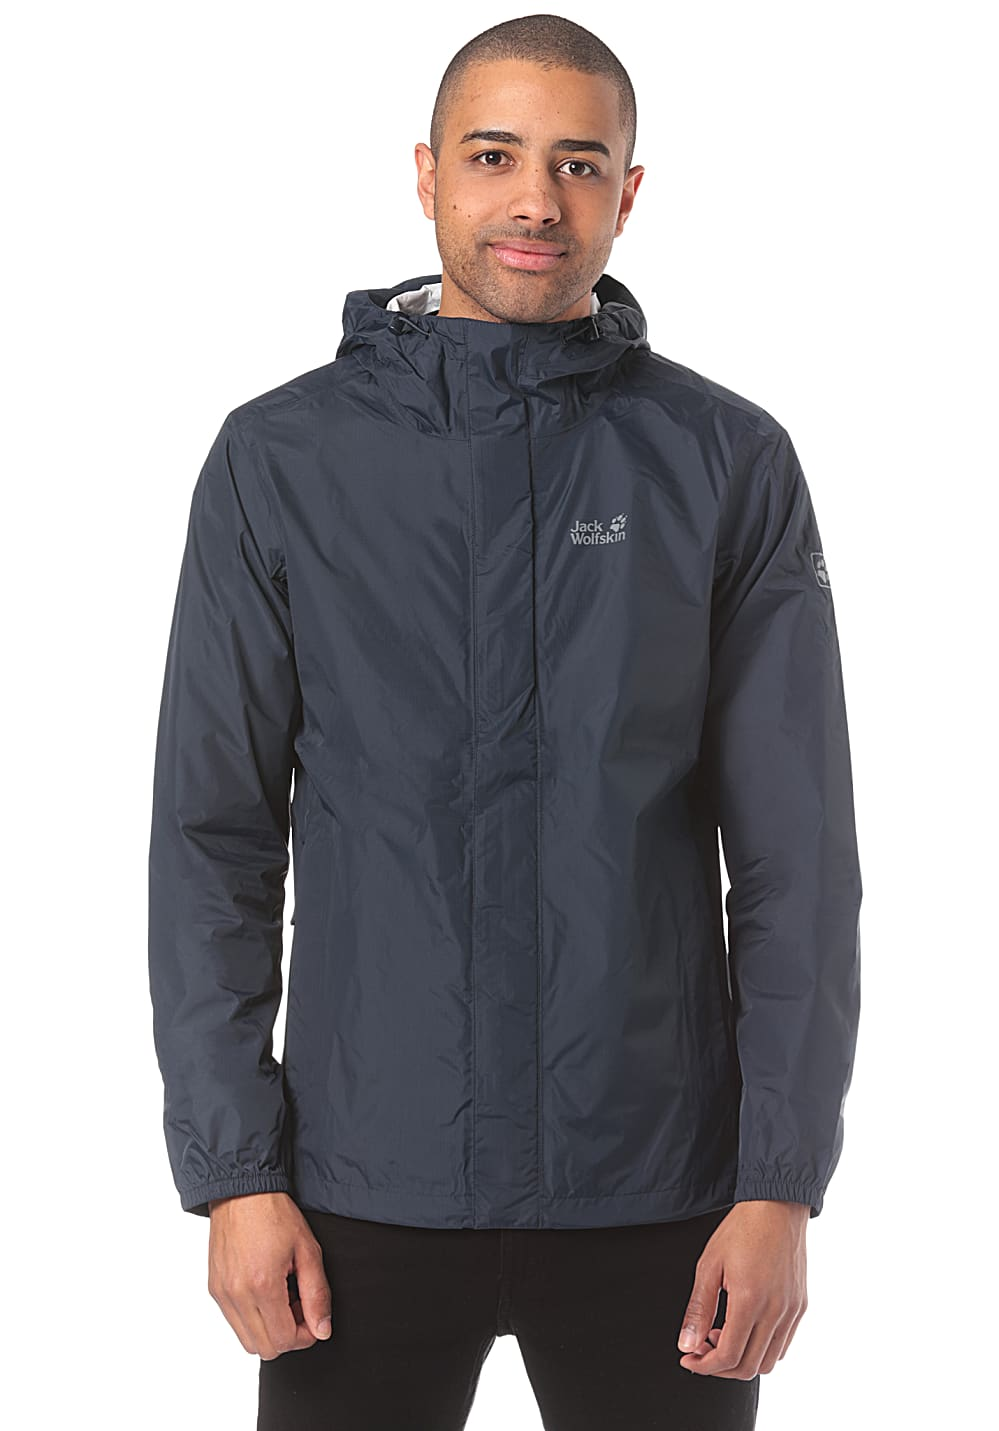 authorized site new appearance most popular Jack Wolfskin Cloudburst - Outdoor Jacket for Men - Blue